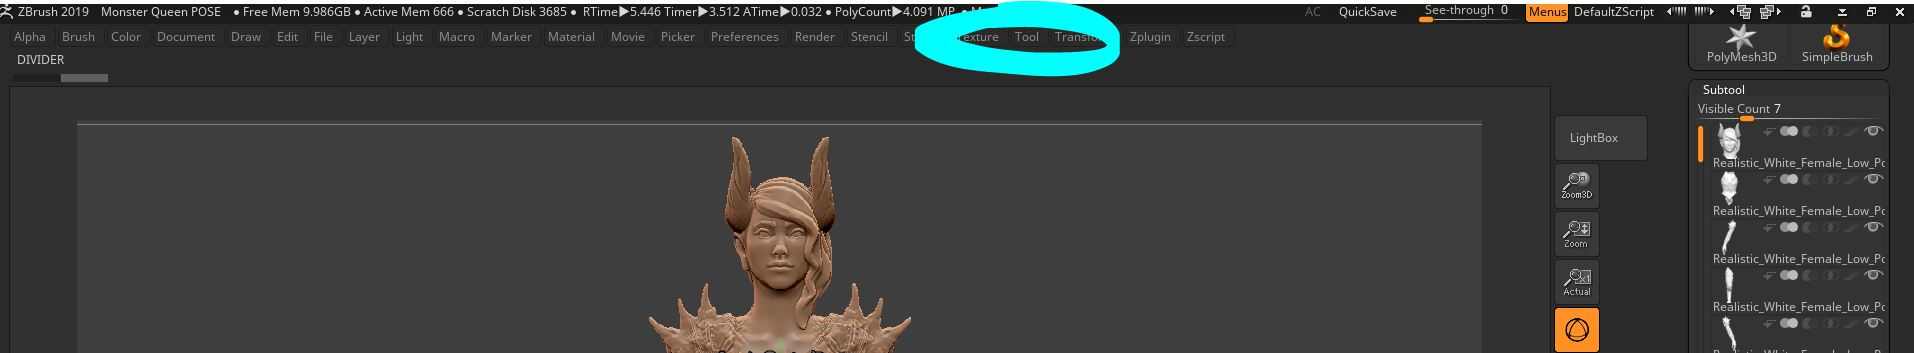 Mia… but where is the subtool palette? - Click tool (circled in blue) at the top of your screen. You'll see that Subtool is the first thing listed.